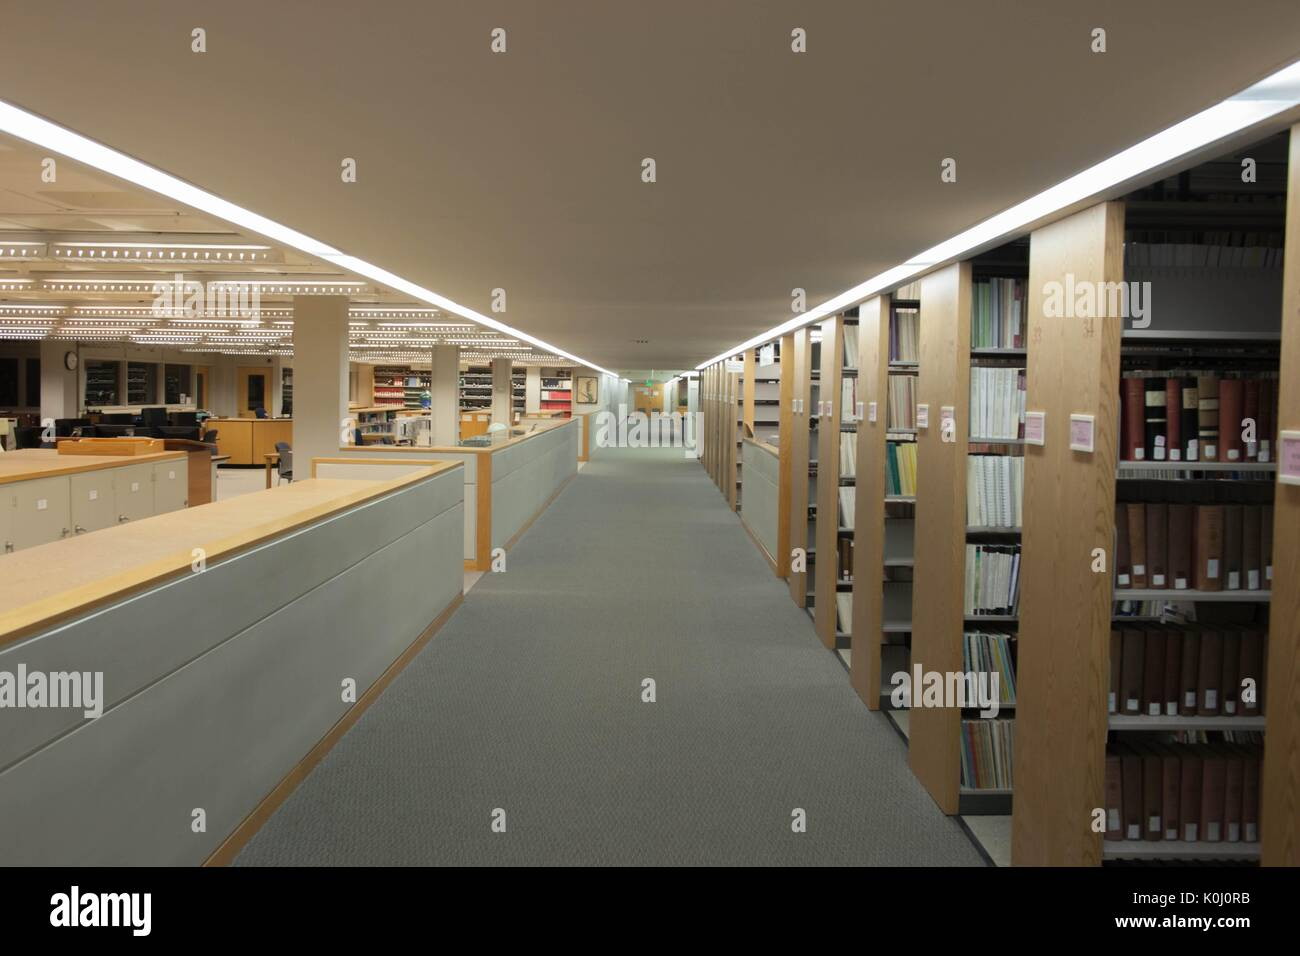 Stacks full of books and study spaces on A-Level of the Milton S. Eisenhower Library on the Homewood campus of the Johns Hopkins University in Baltimore, Maryland, 2015. Courtesy Eric Chen. - Stock Image